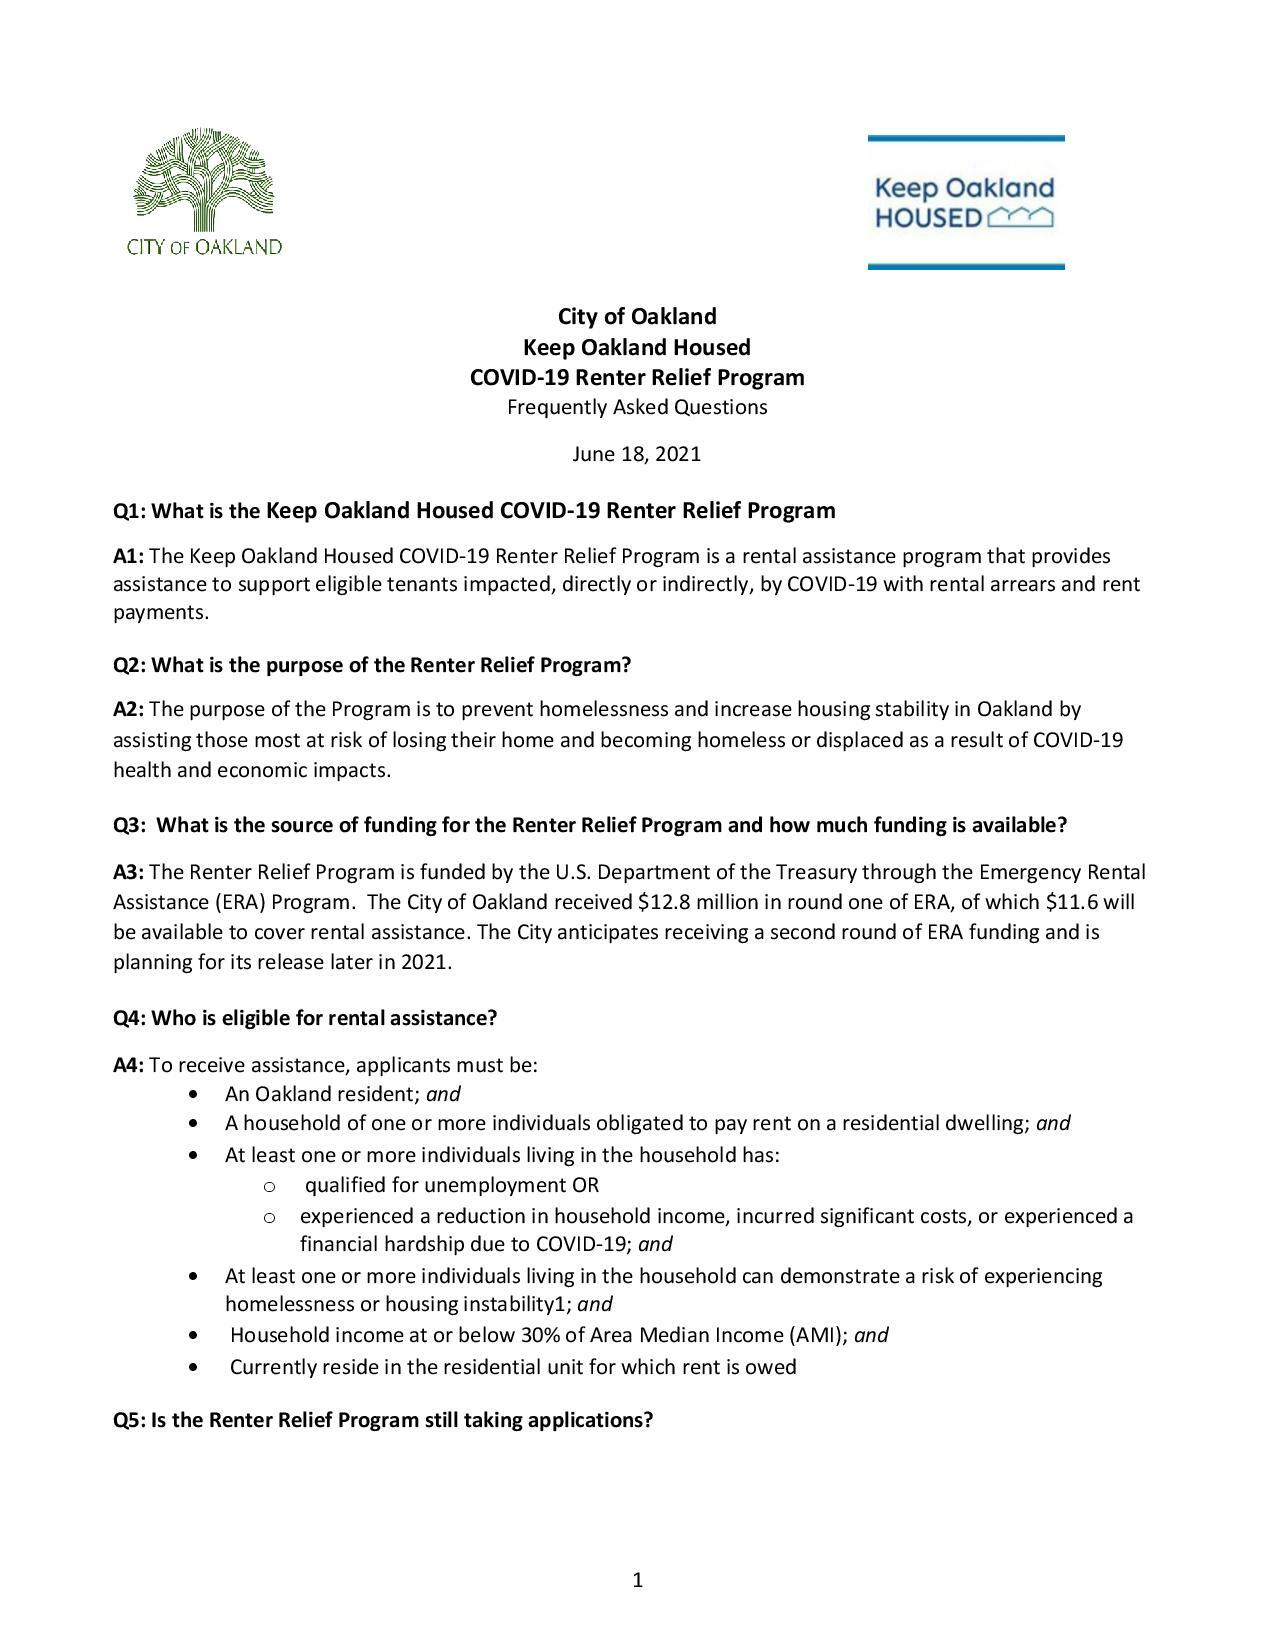 Oakland Renter Relief FAQ page 1 of 3